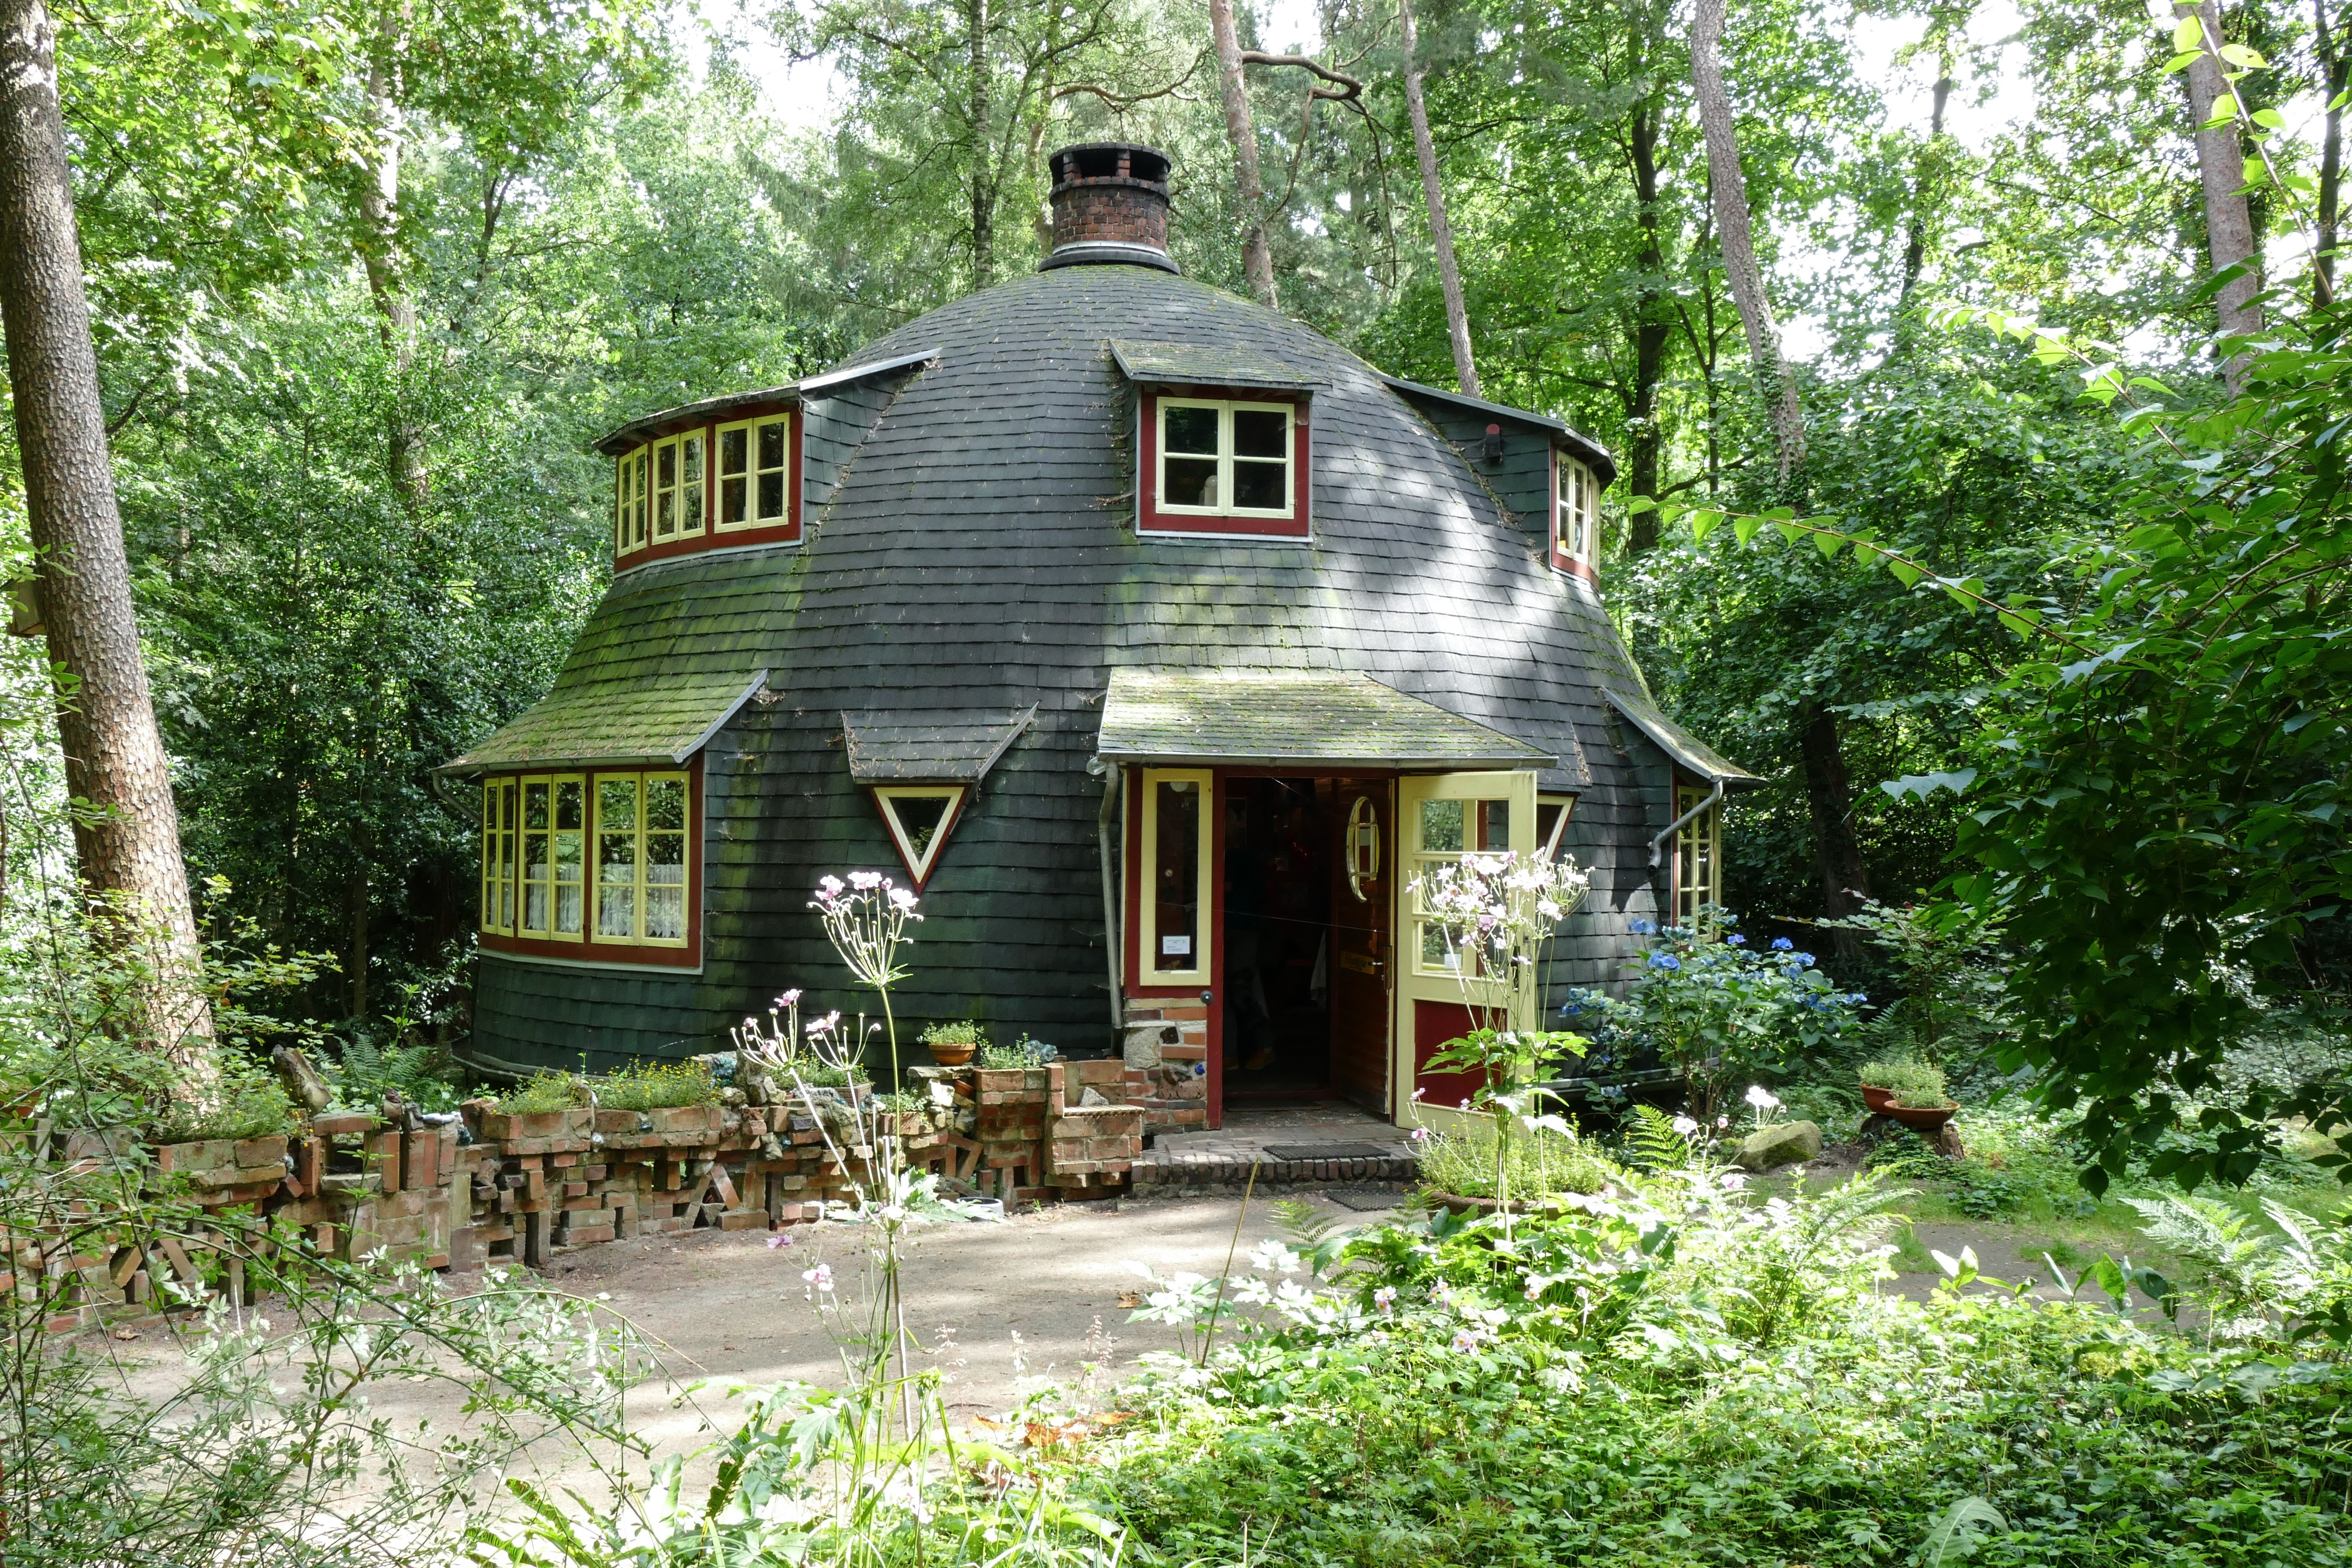 Brown And White Wooden House On Green Forest 183 Free Stock